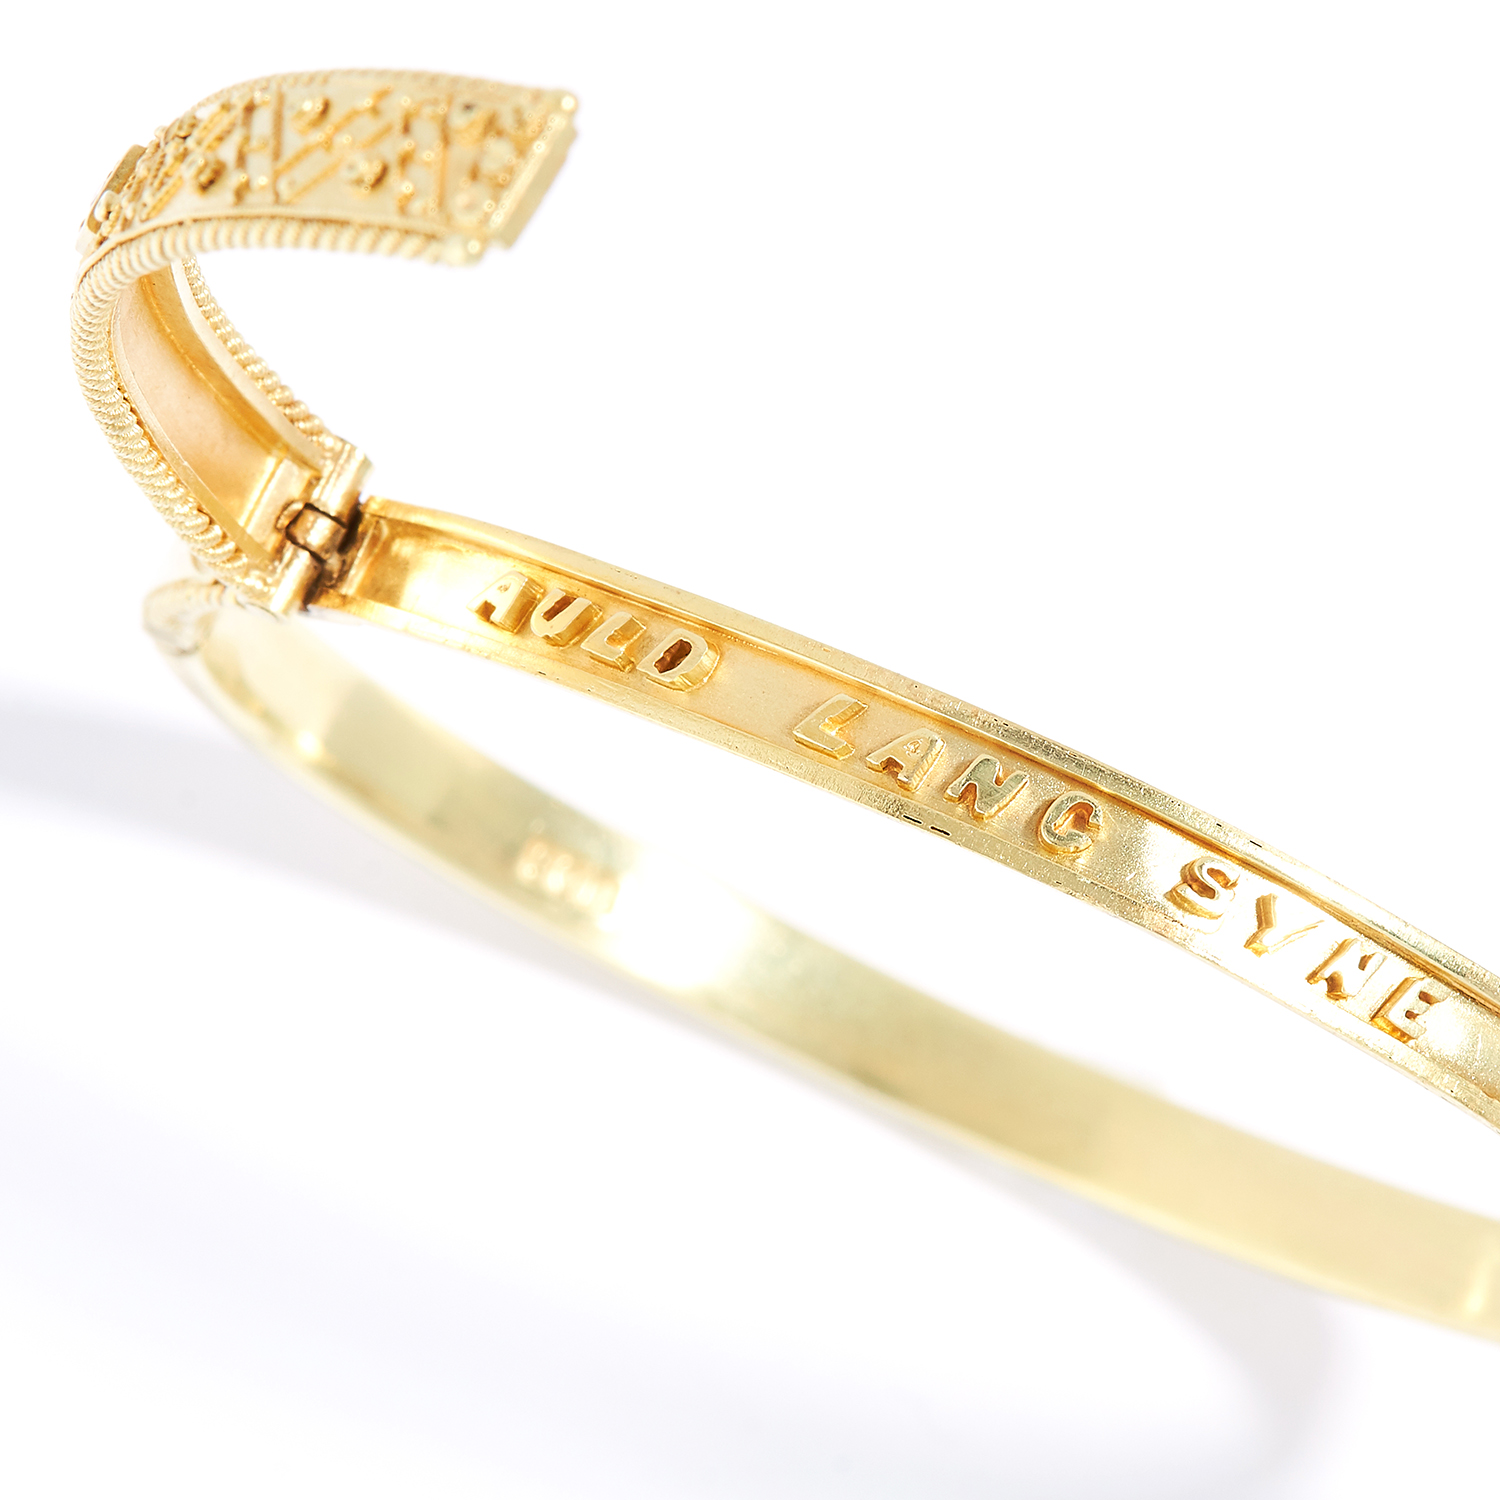 Los 4 - ANTIQUE DIAMOND BANGLE in yellow gold, set with a round cut diamond in gold filigree design, opening